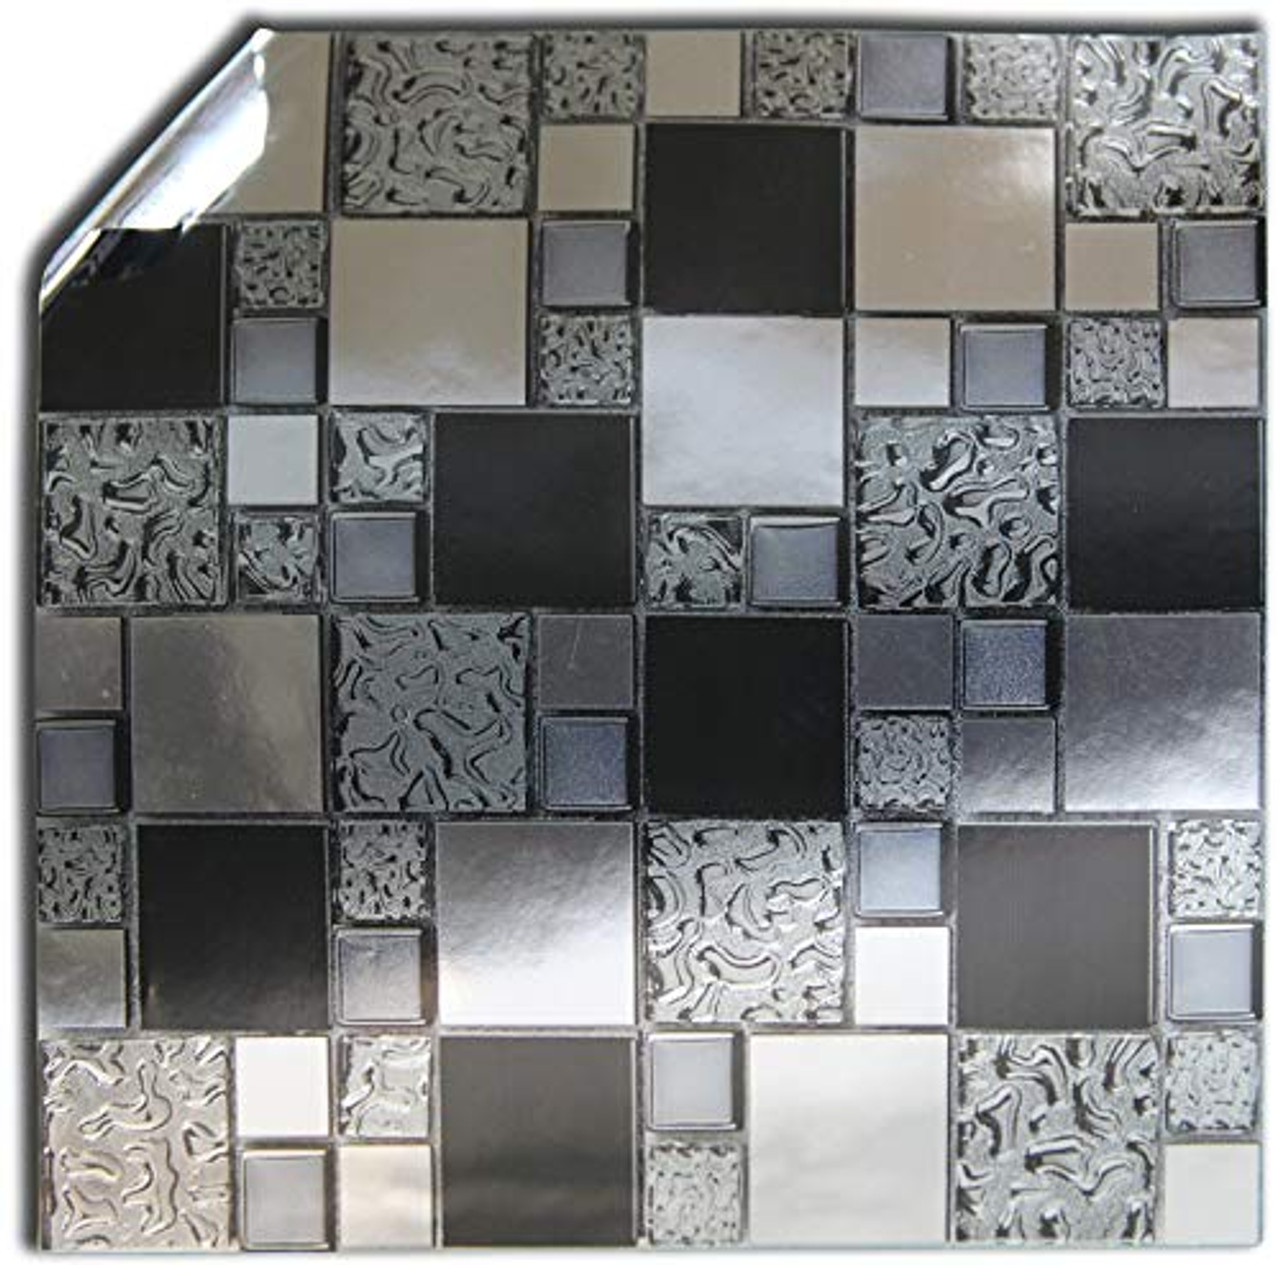 24 Silver Black Chrome Glass Grey Kitchen Bathroom Tile Stickers For 15cm X 15cm 6x6 Inches Square Tiles From Tile Style Decals